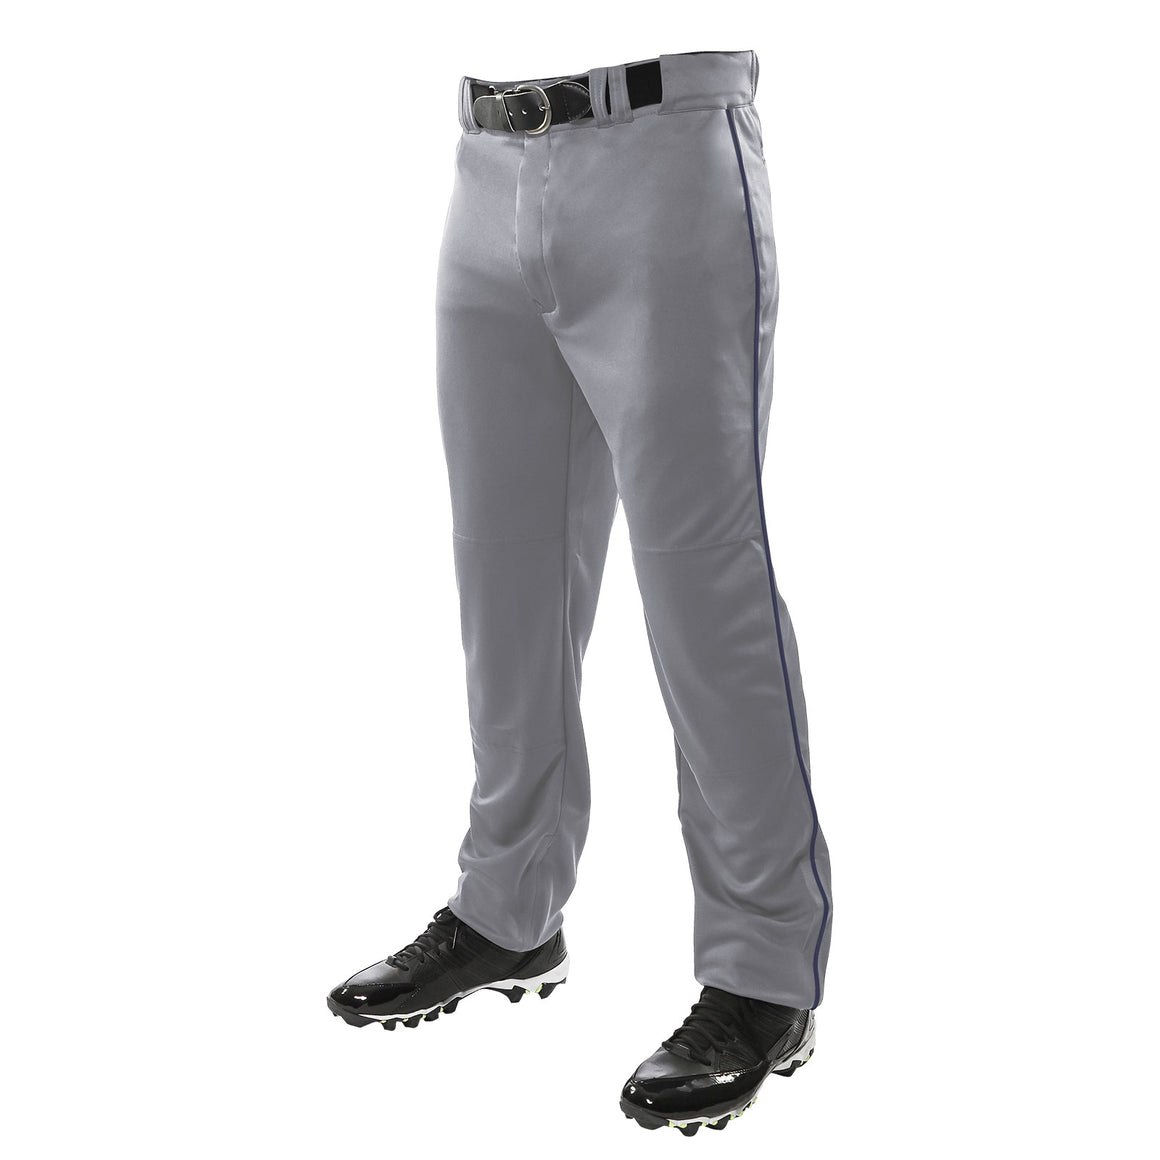 Champro Triple Crown Adult Piped Baseball Pant, Grey/Navy